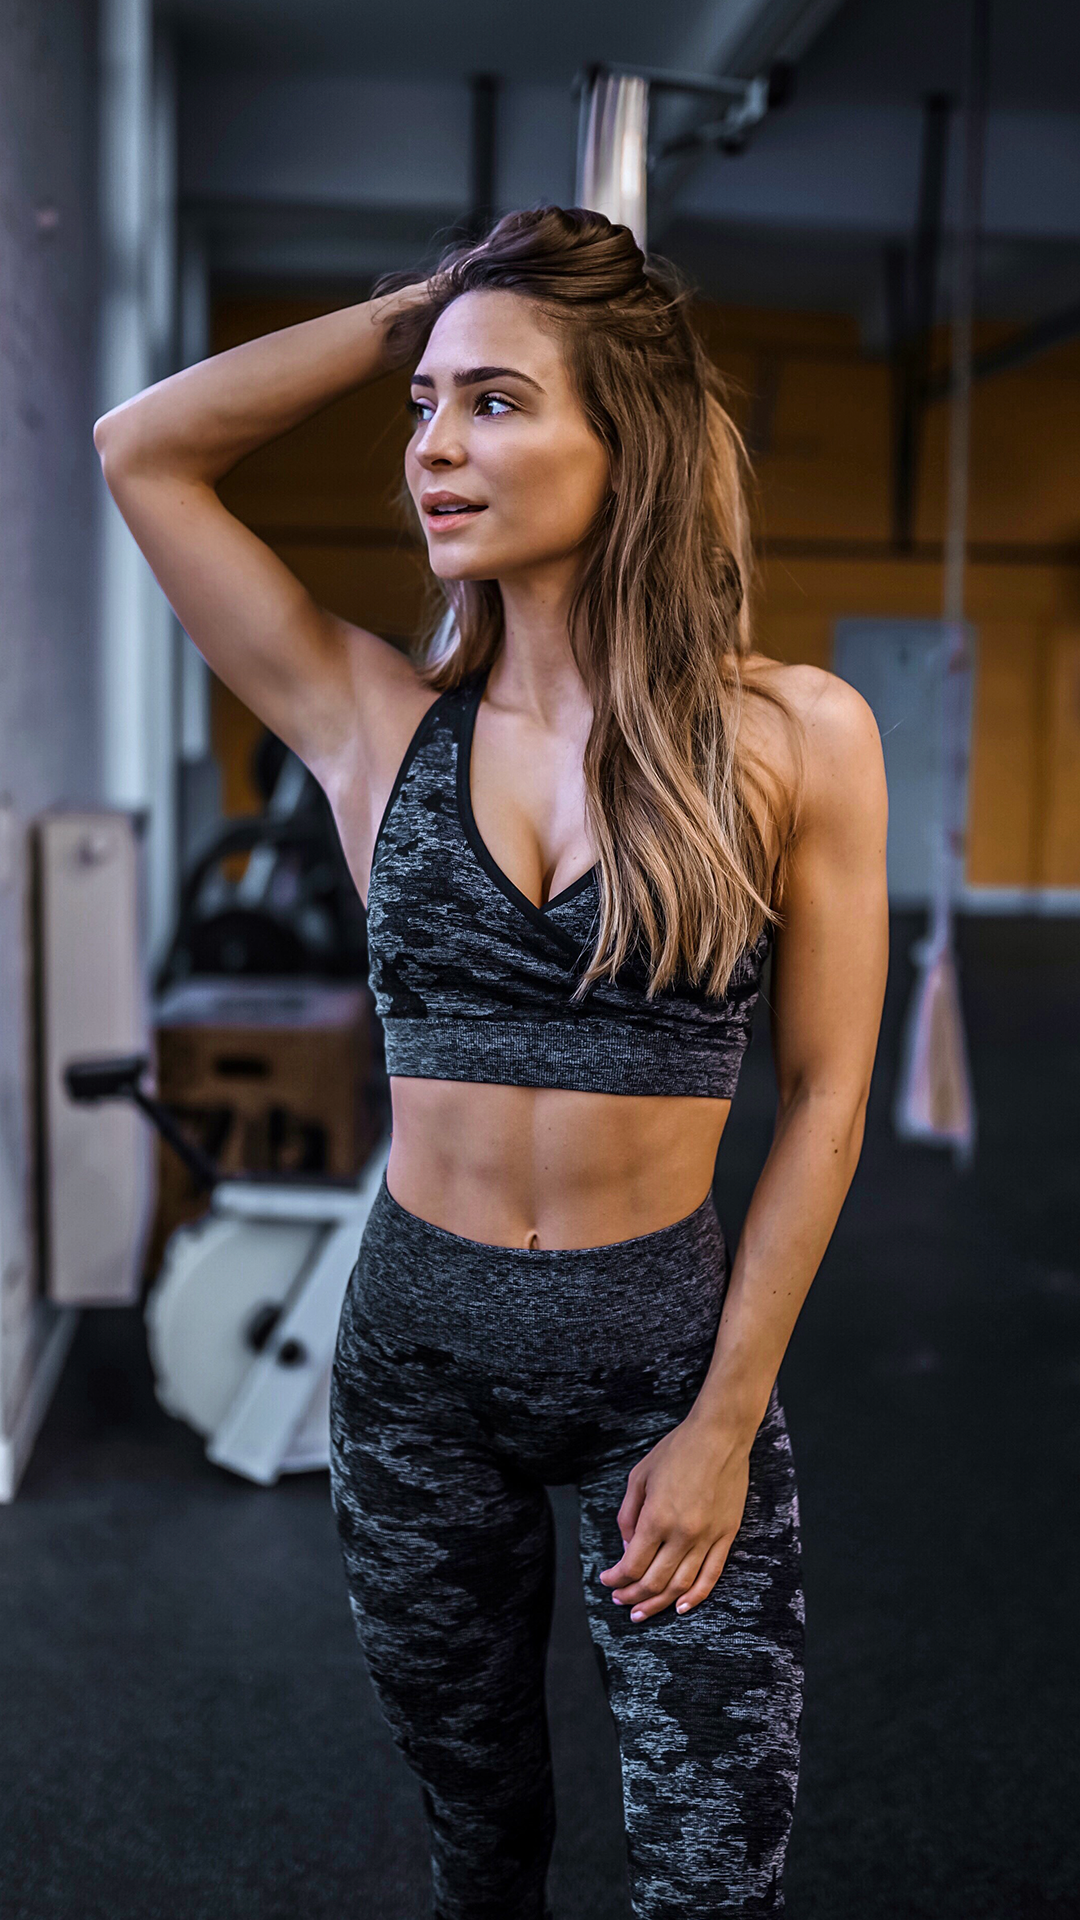 55059c6c7014d Evelina sports the Camo Seamless Sports Bra and Leggings in the Black. A  camouflage pattern, designed to blend out. The Camo Seamless Leggings are  what ...